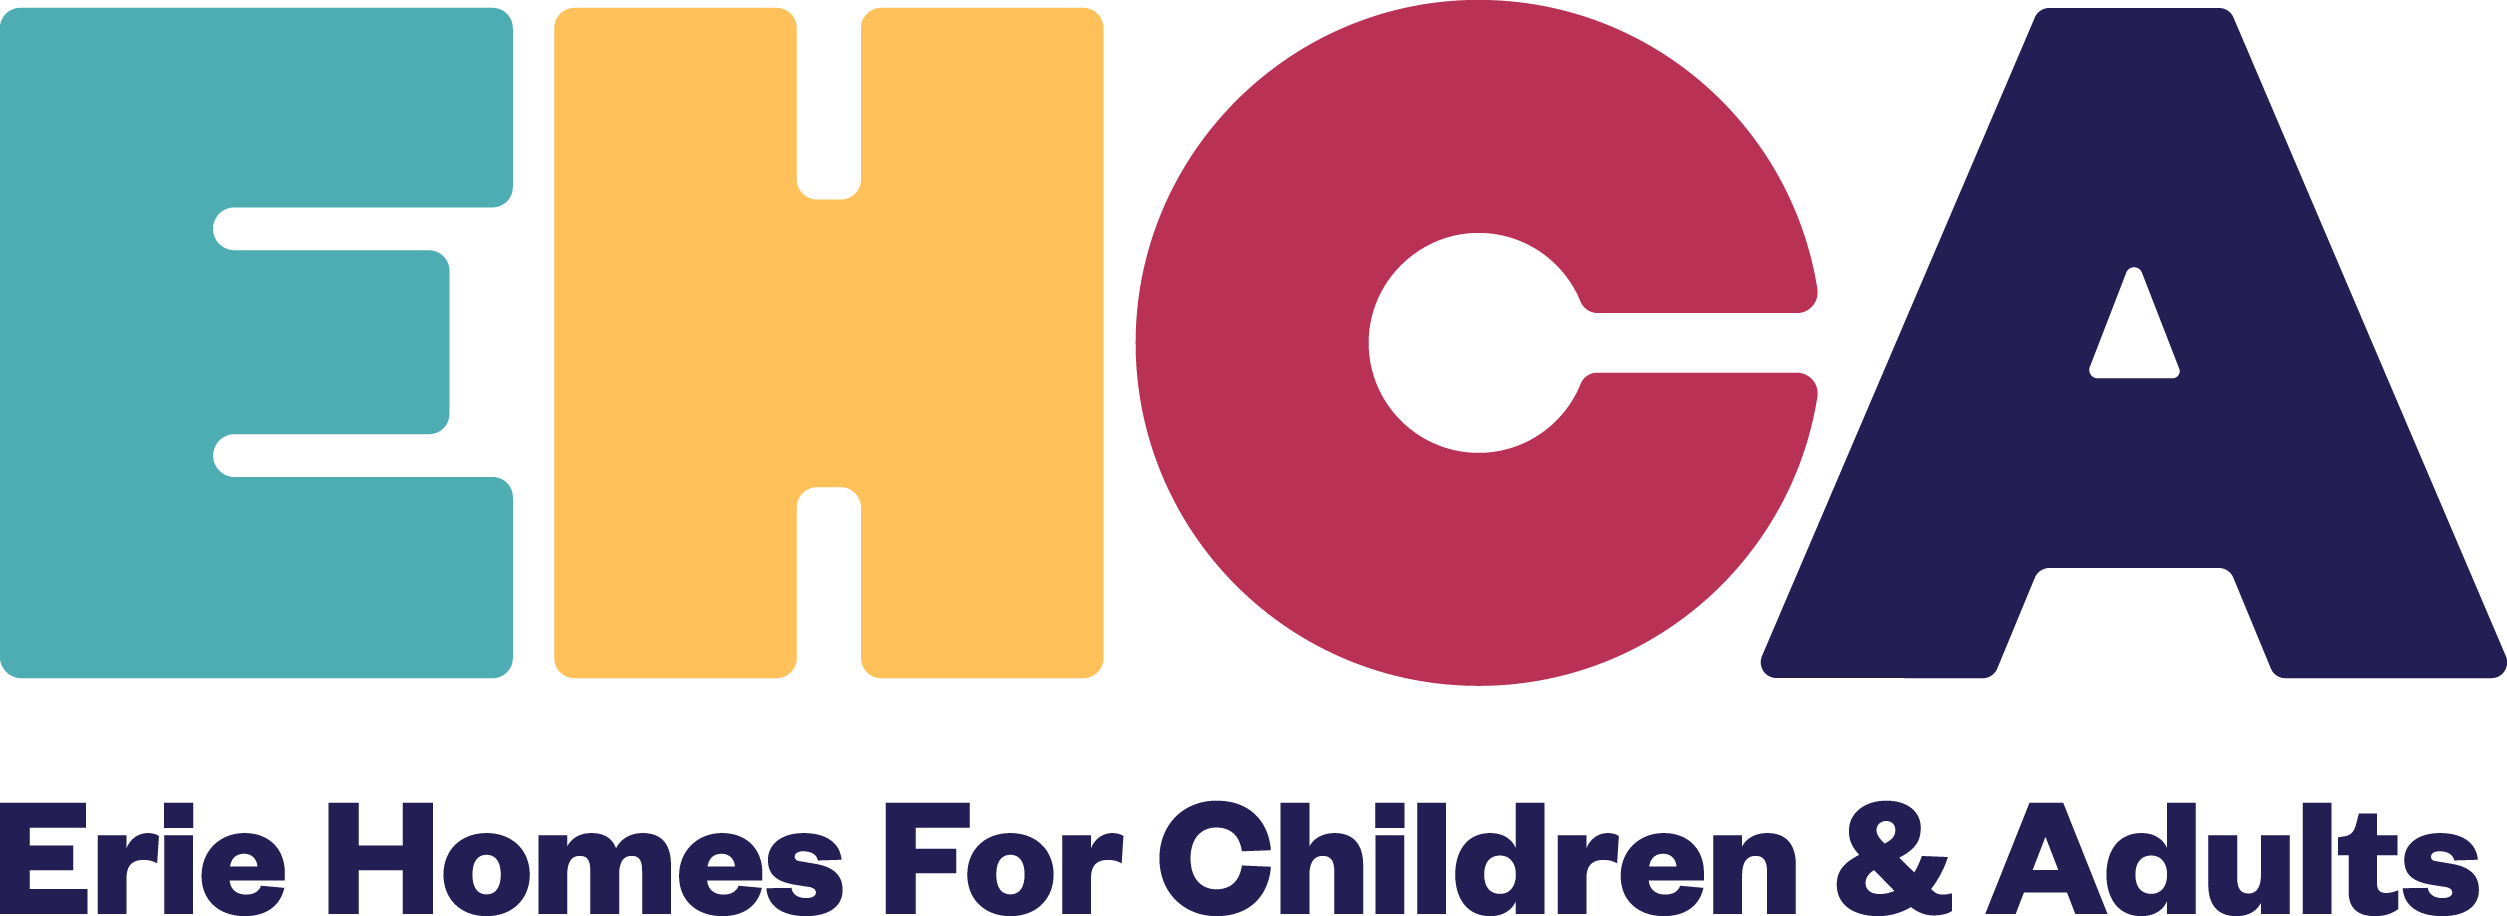 Image of Erie Homes for Children & Adults (EHCA) multicolored logo on transparent background